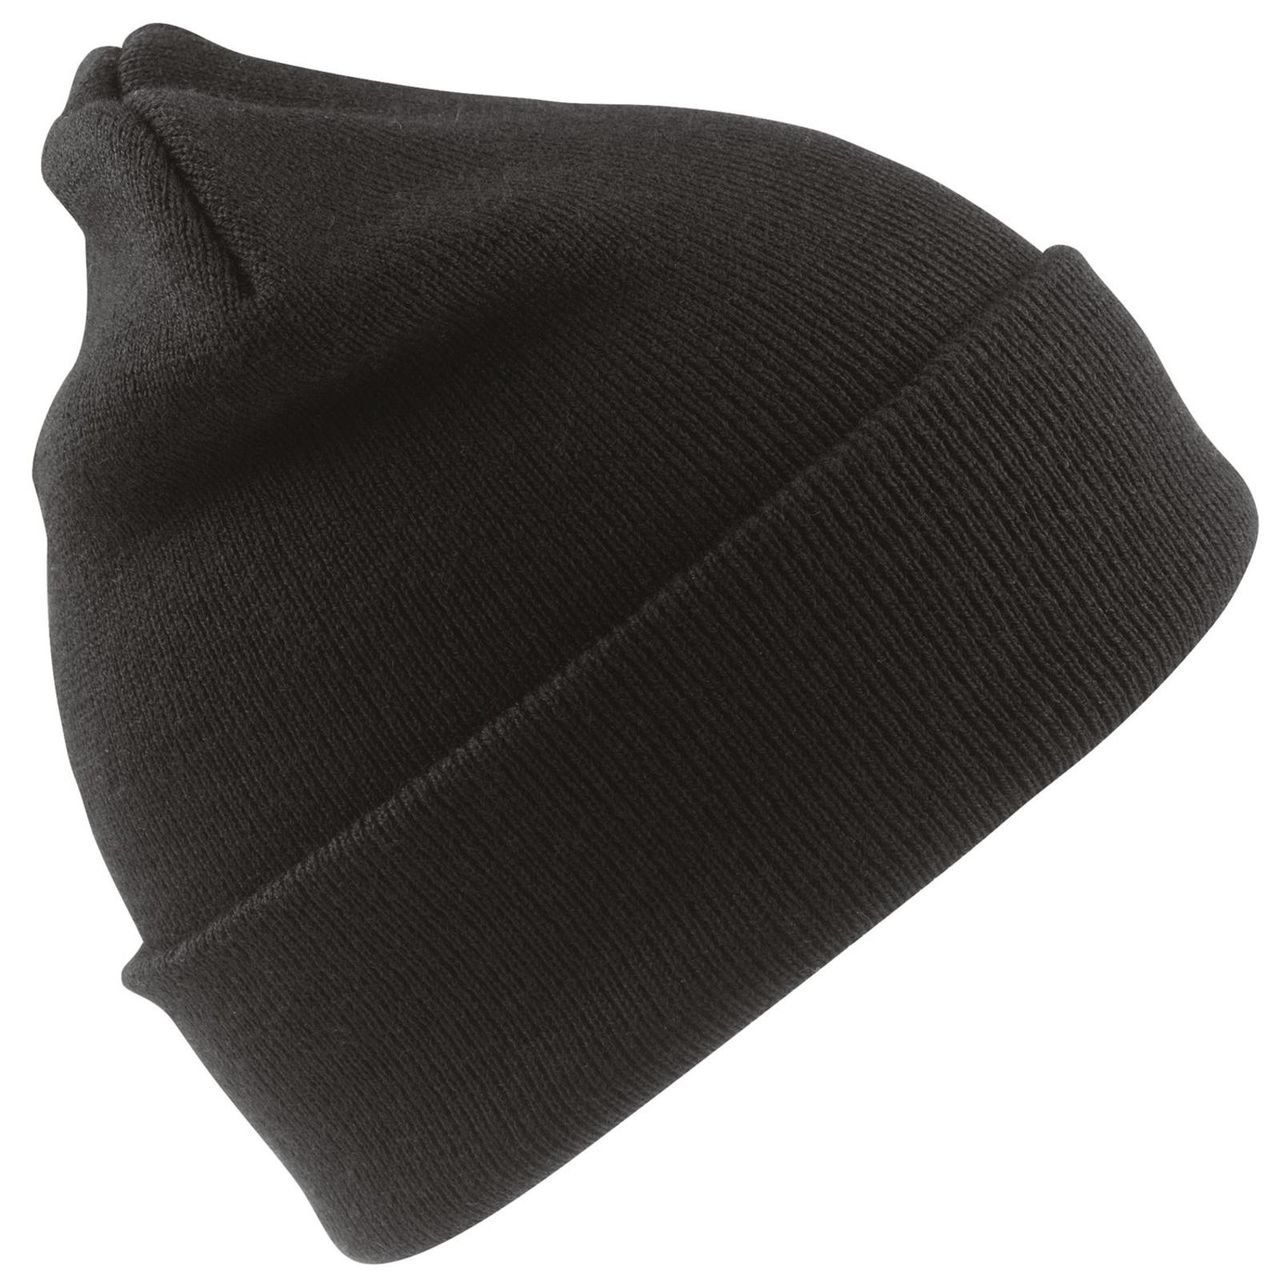 b1feac9b New Result Winter Essentials Wooly Ski Hat W/ Thinsulate Insulation  Headwear: Amazon.co.uk: Clothing